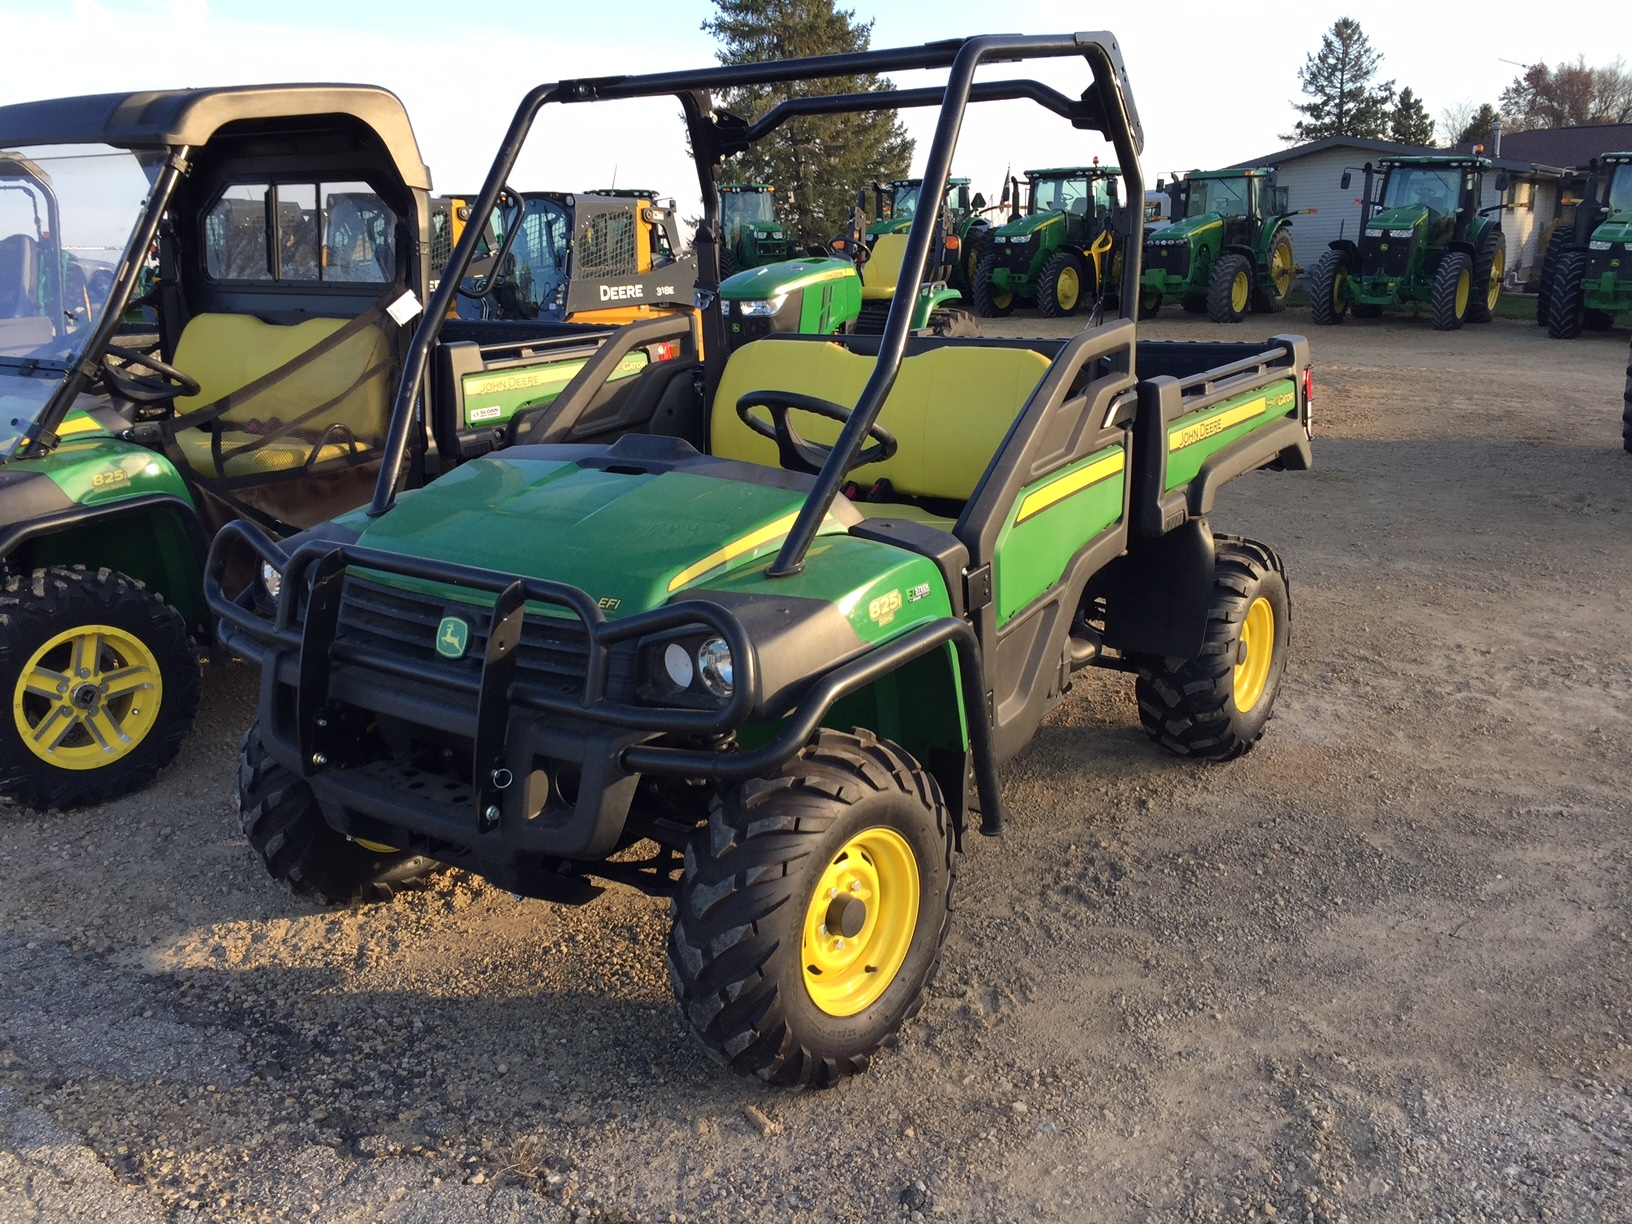 john deere 825i atvs gators for sale 65617. Black Bedroom Furniture Sets. Home Design Ideas